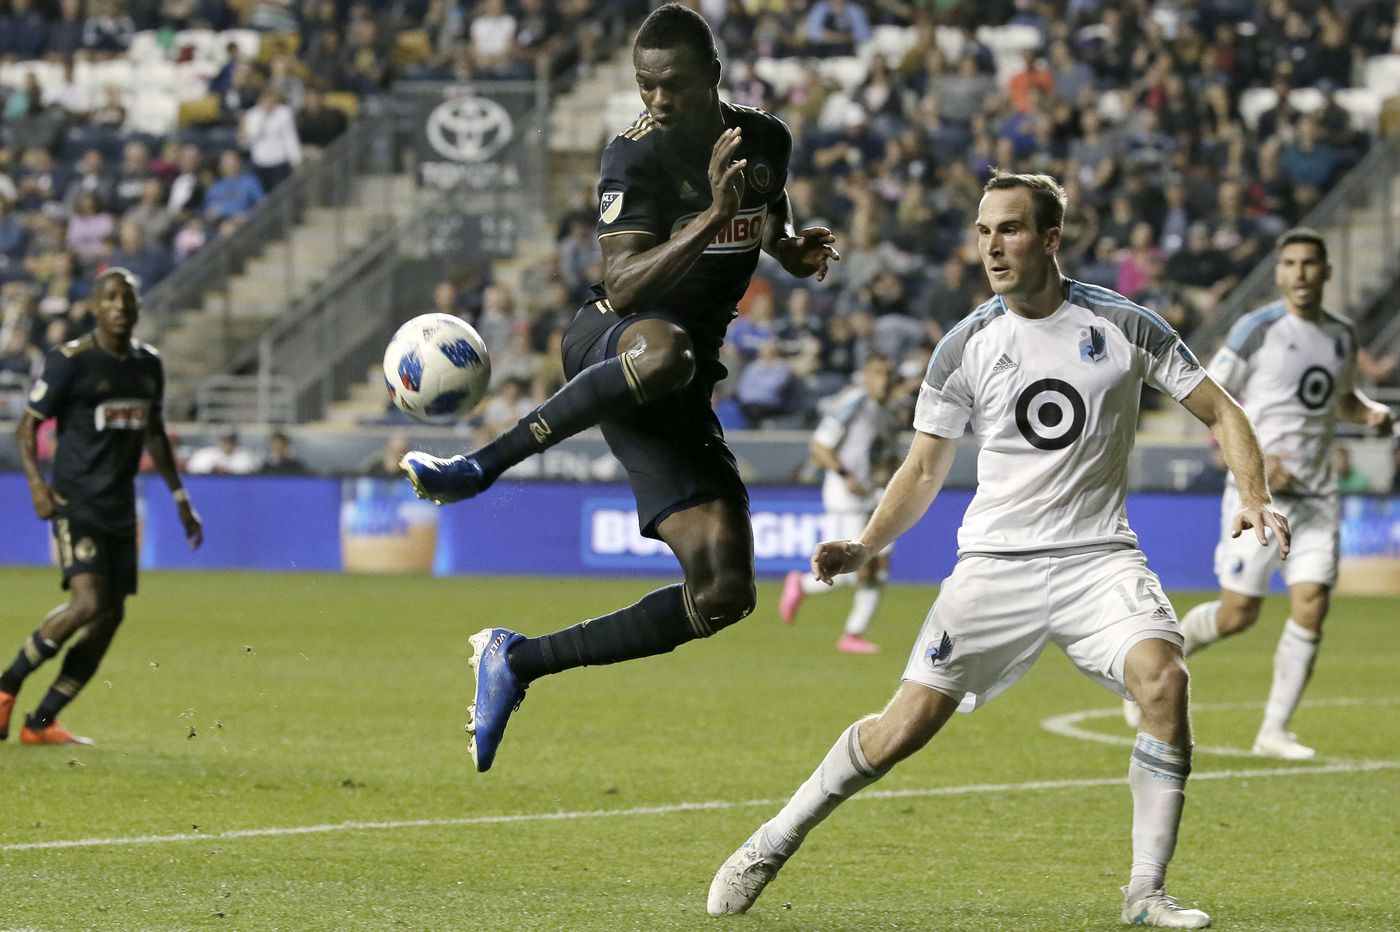 Union clinch first playoff berth since 2016 with 5-1 win over Minnesota United